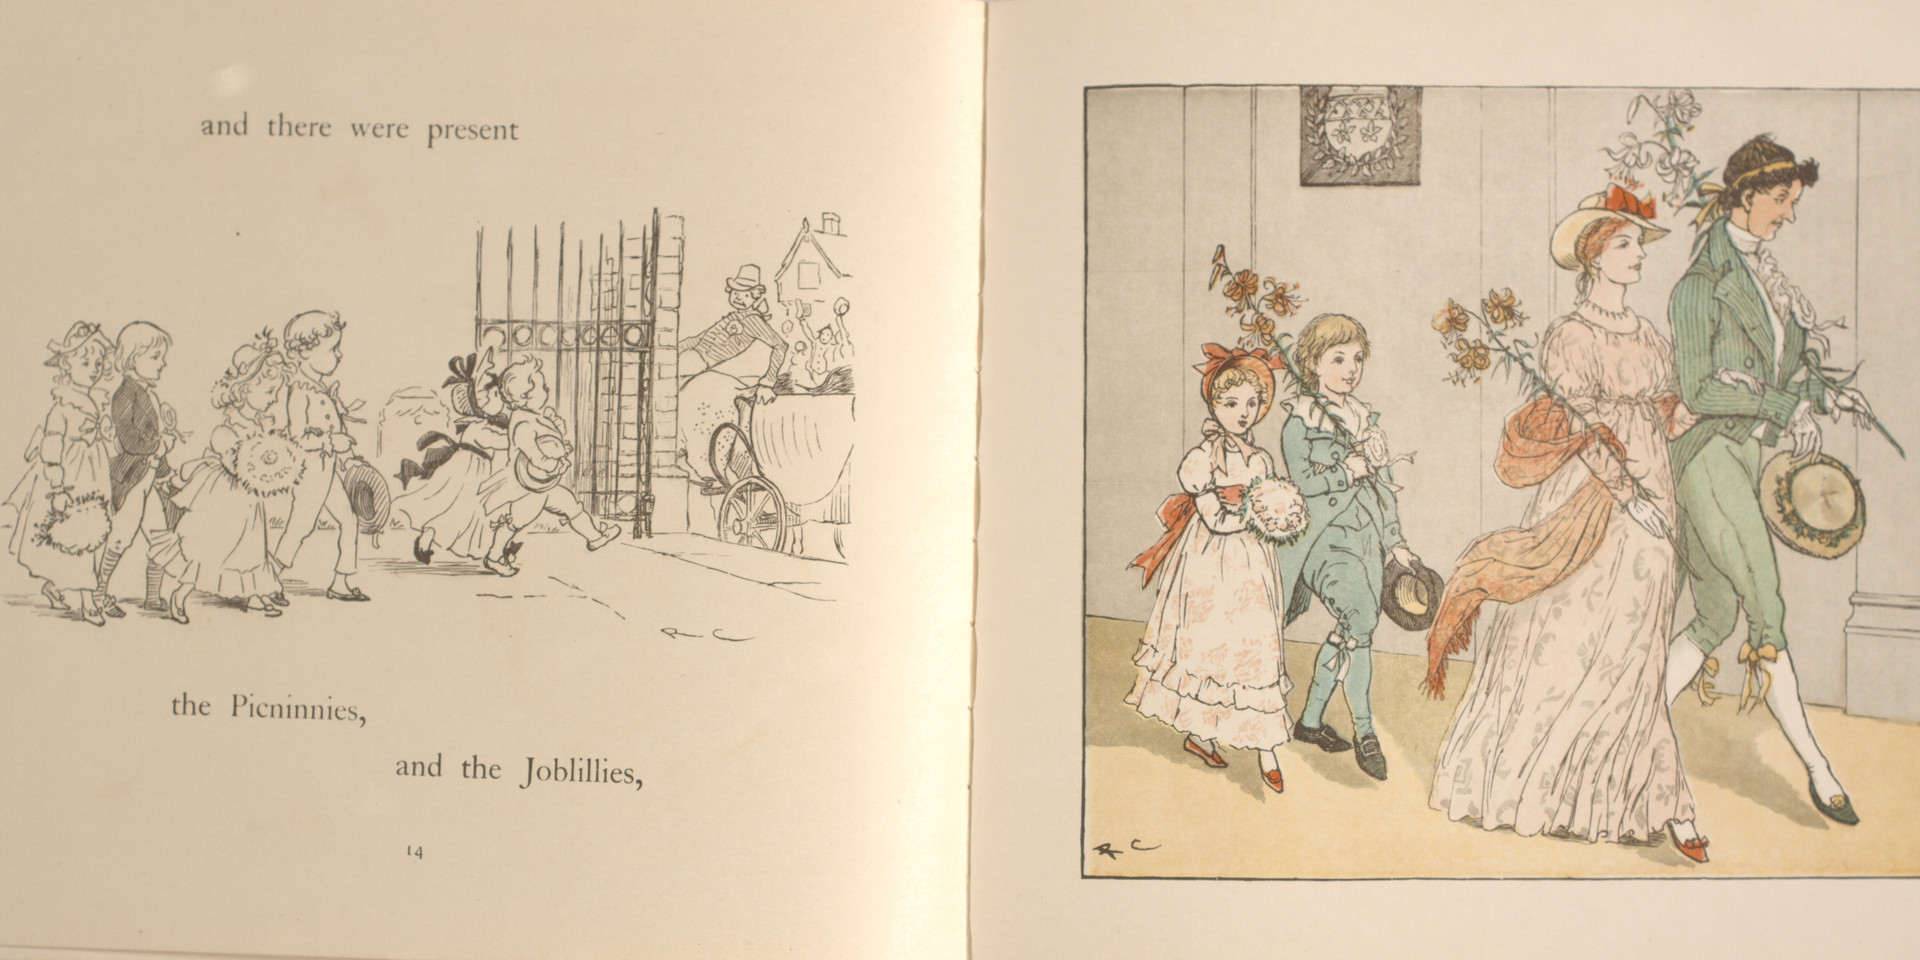 Caldecott, Randolph. The Great Panjandrum Himself. Frederick Warne & Co., 1855. p.11-12. Ryerson University Library and Archives.